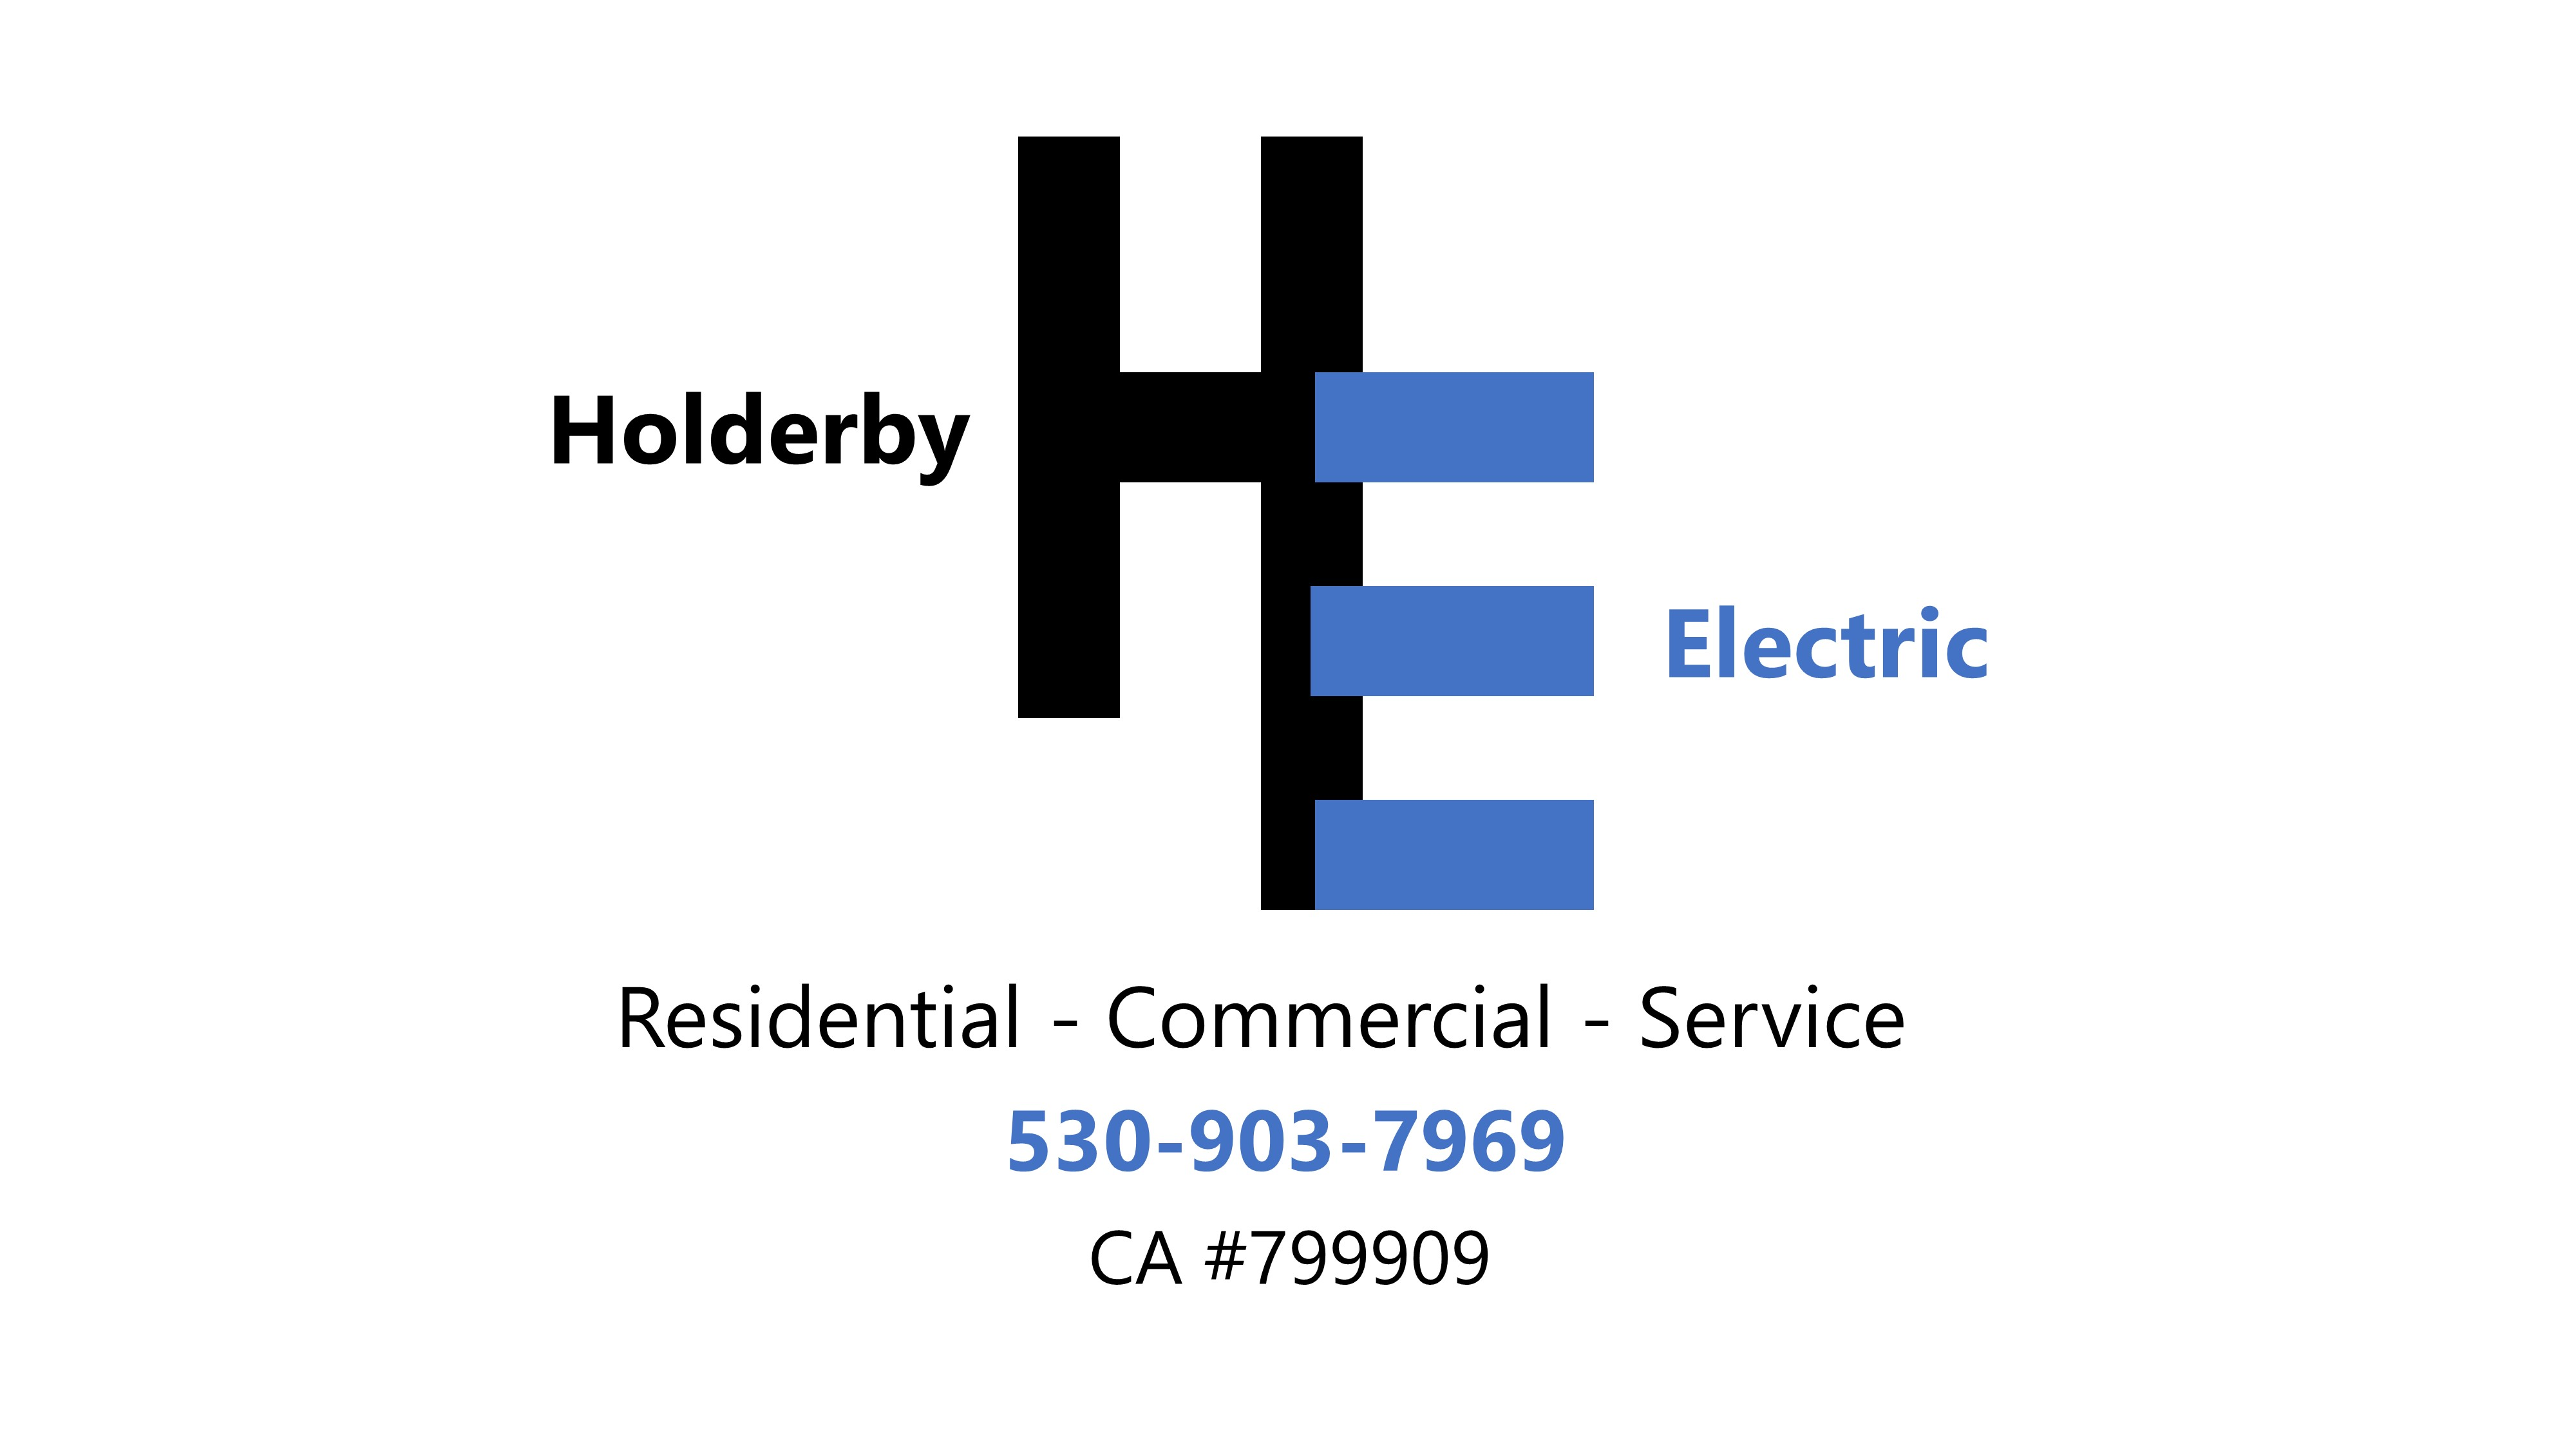 Holderby Electric